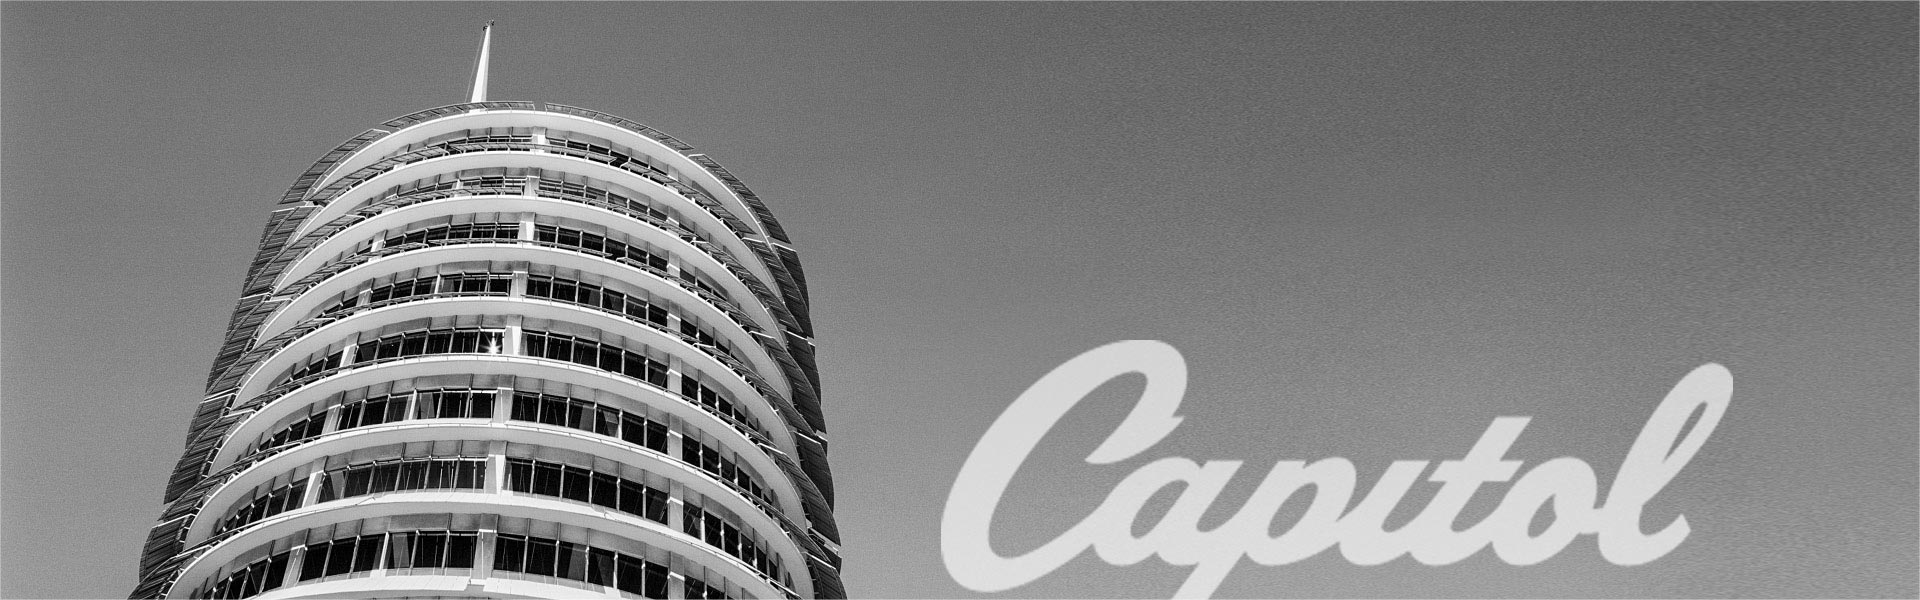 Capitol Music Group - UMG 3be992f6c219